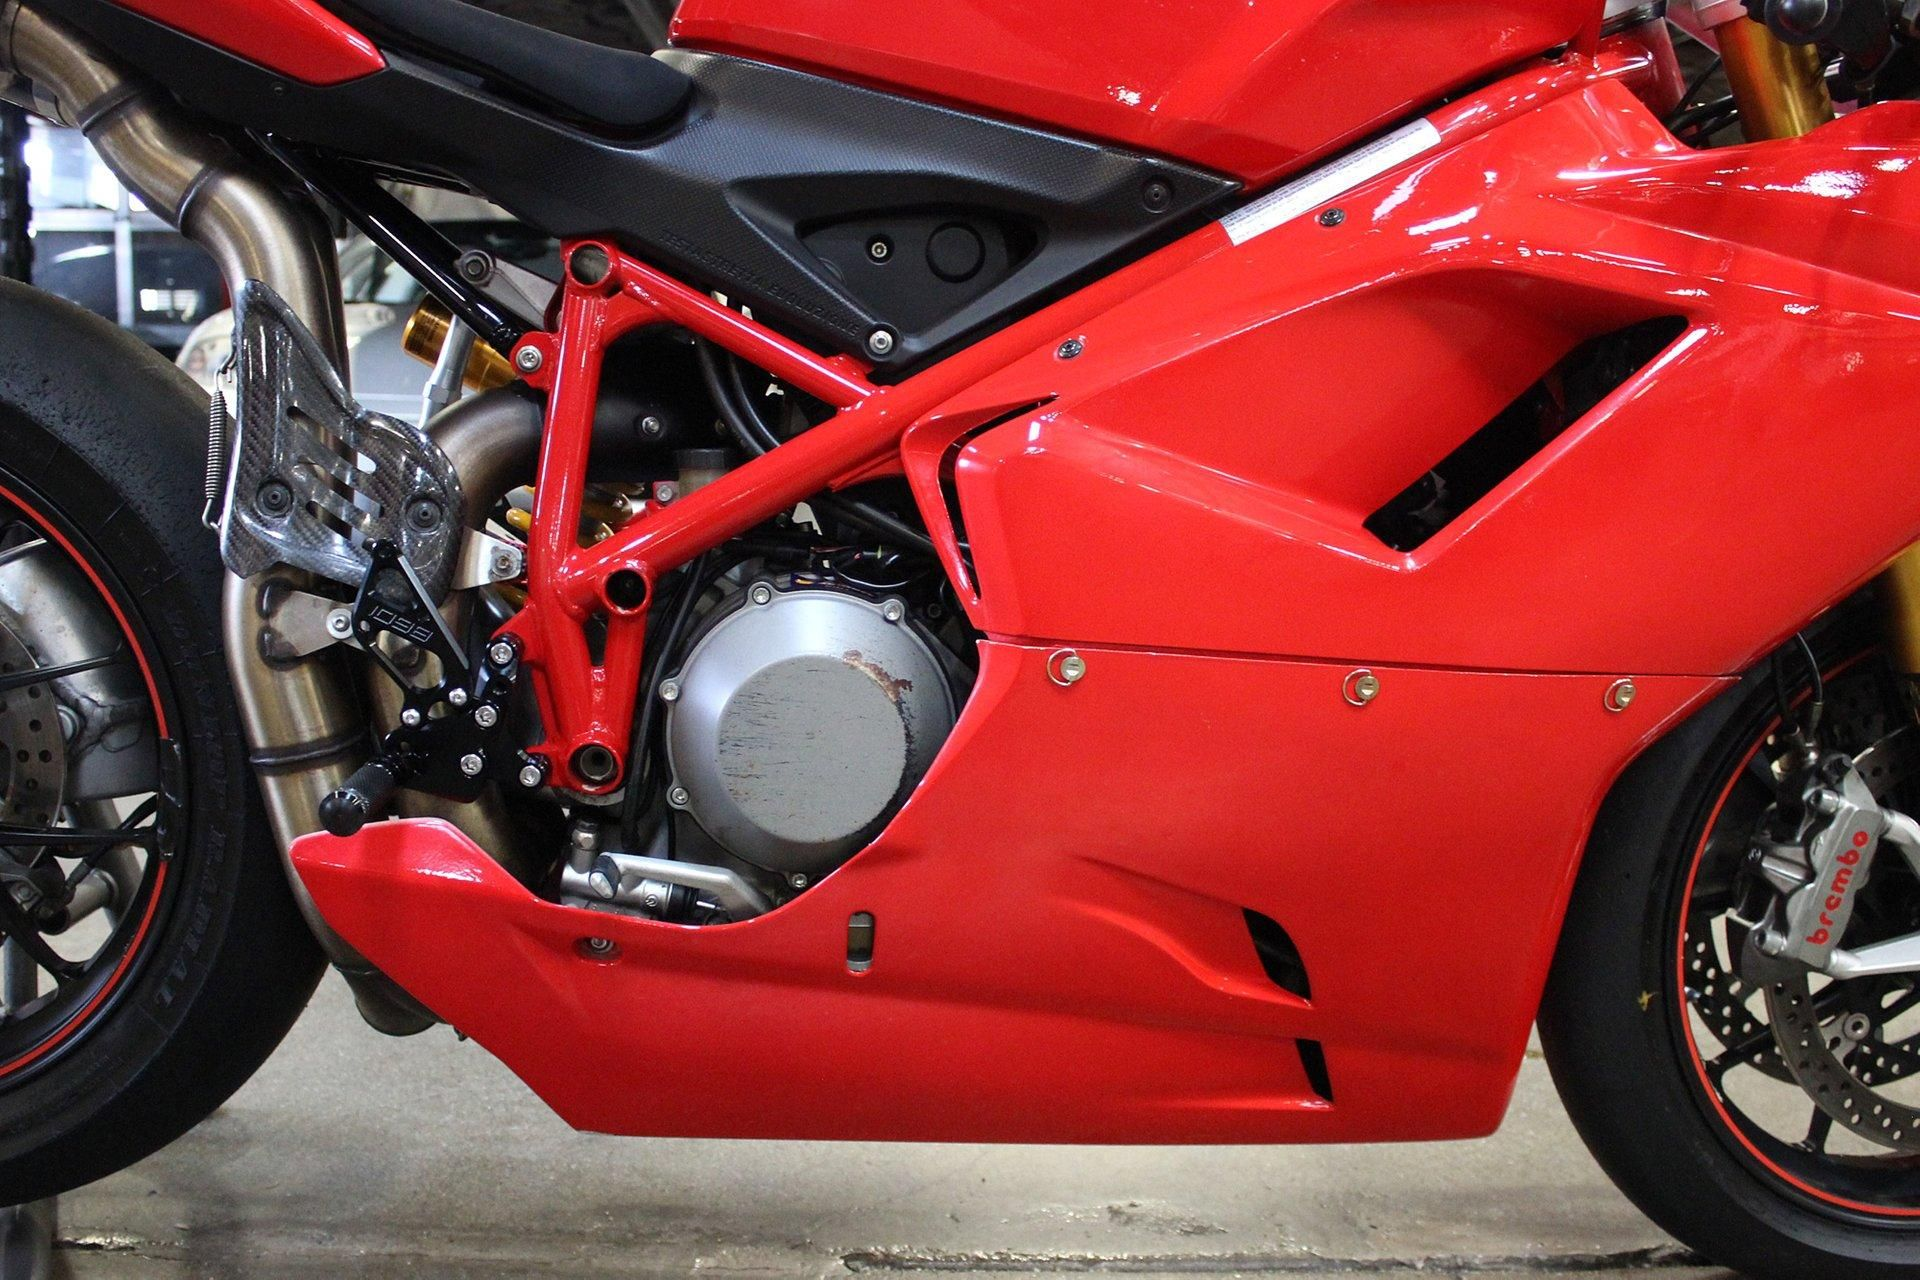 Used 2007 Ducati 1098S For Sale (Special Pricing) | San Francisco Sports Cars Stock #MC19001